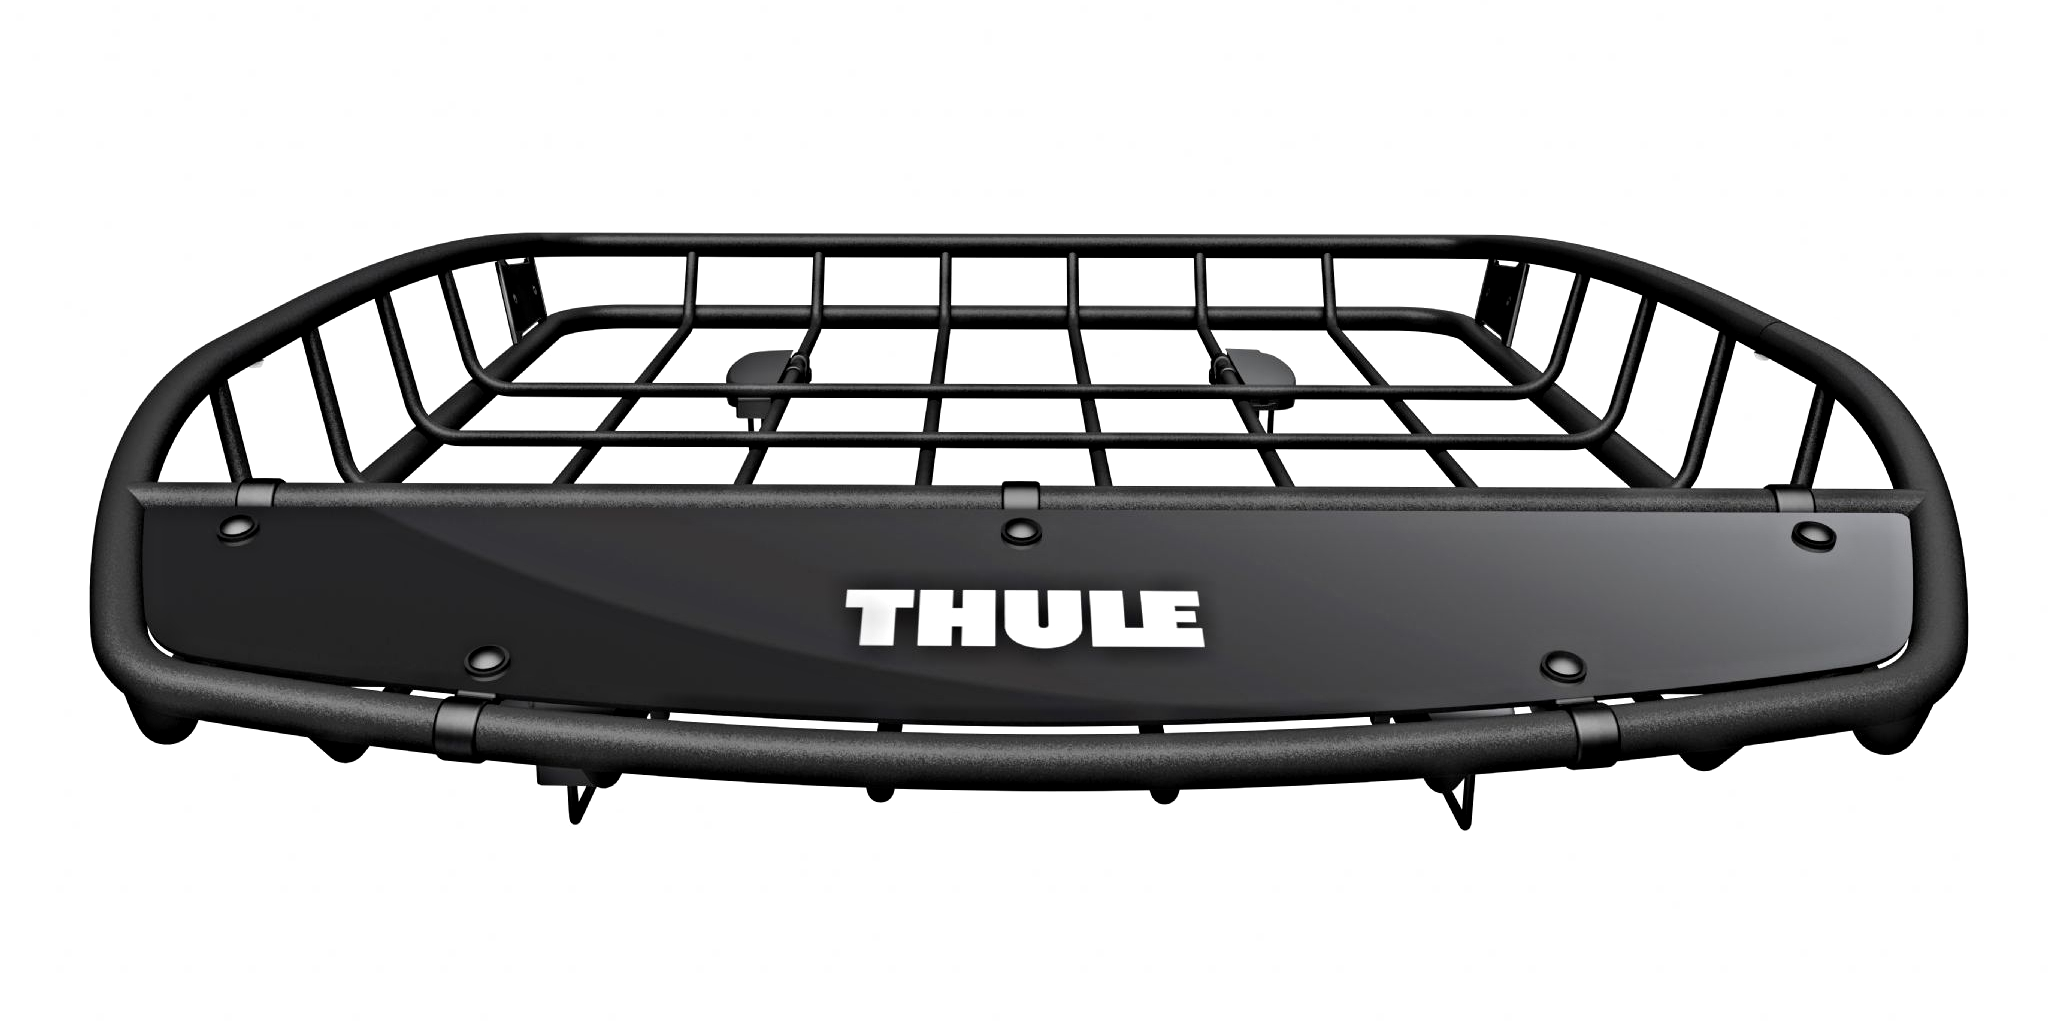 Thule 859 Canyon Xt Basket Roof Rack Mount Cargo Luggage